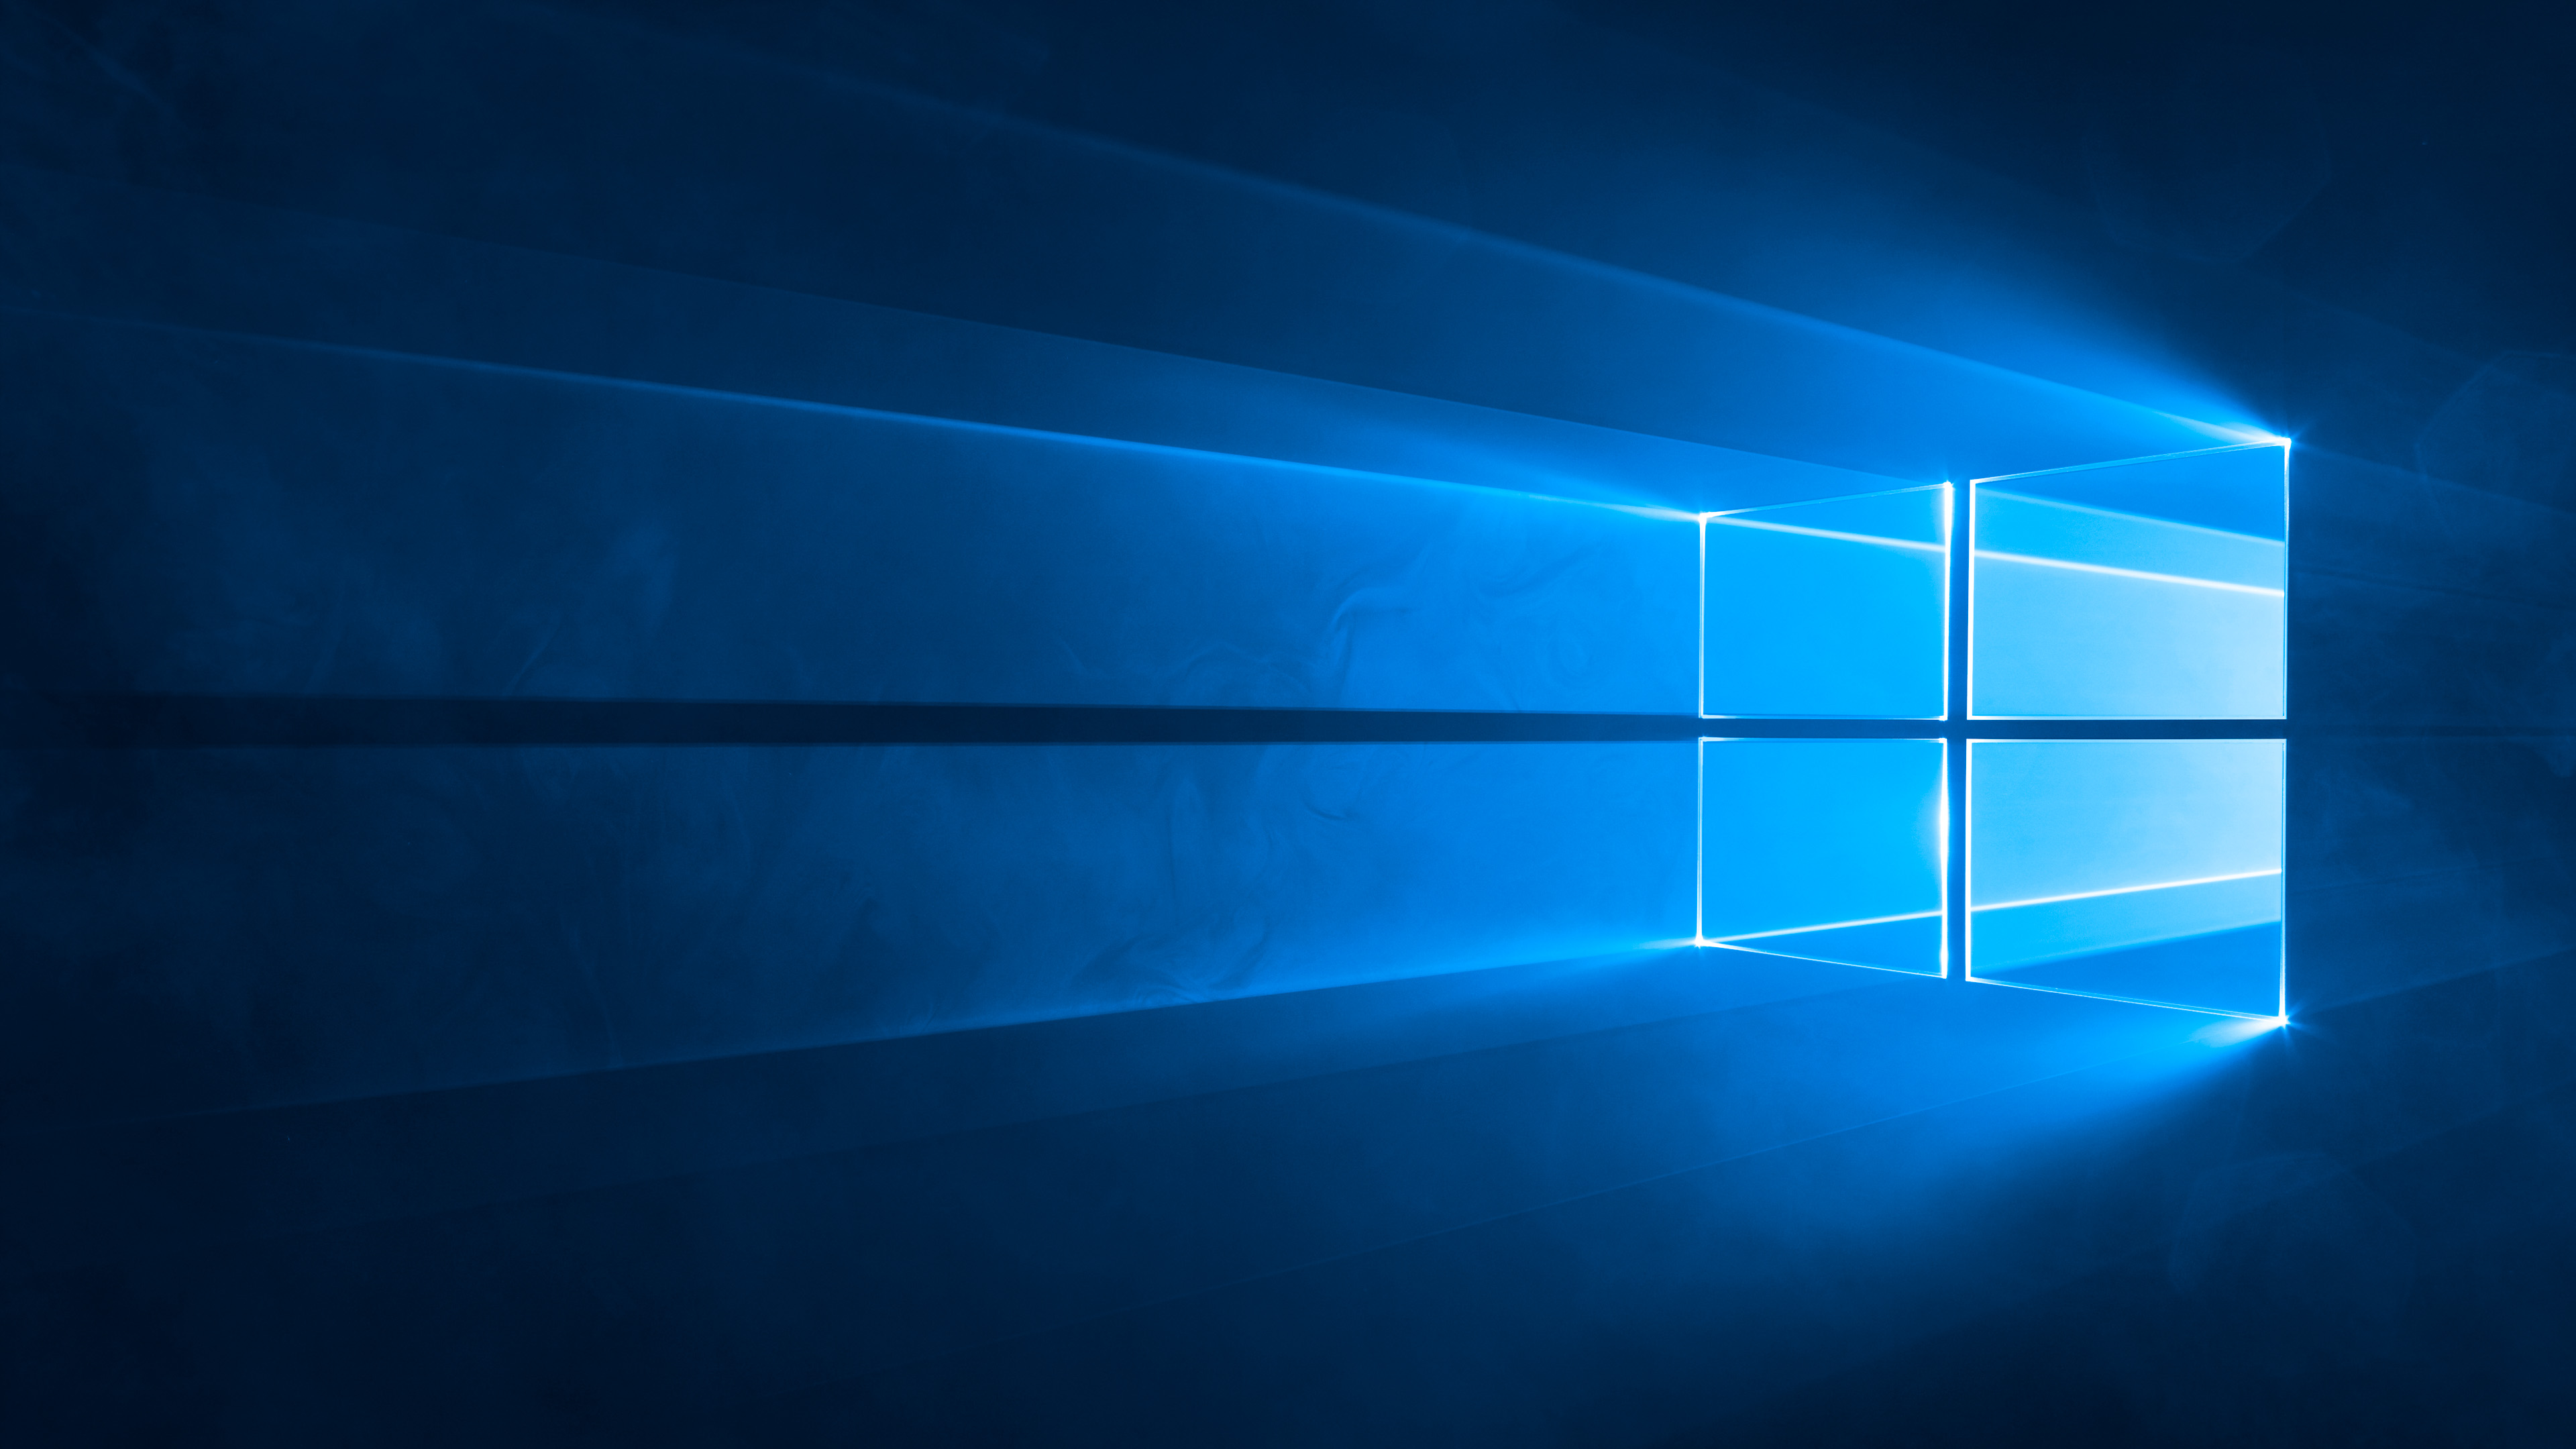 How to Automatically Change Wallpaper Everyday on Windows 10 7 8 3840x2160